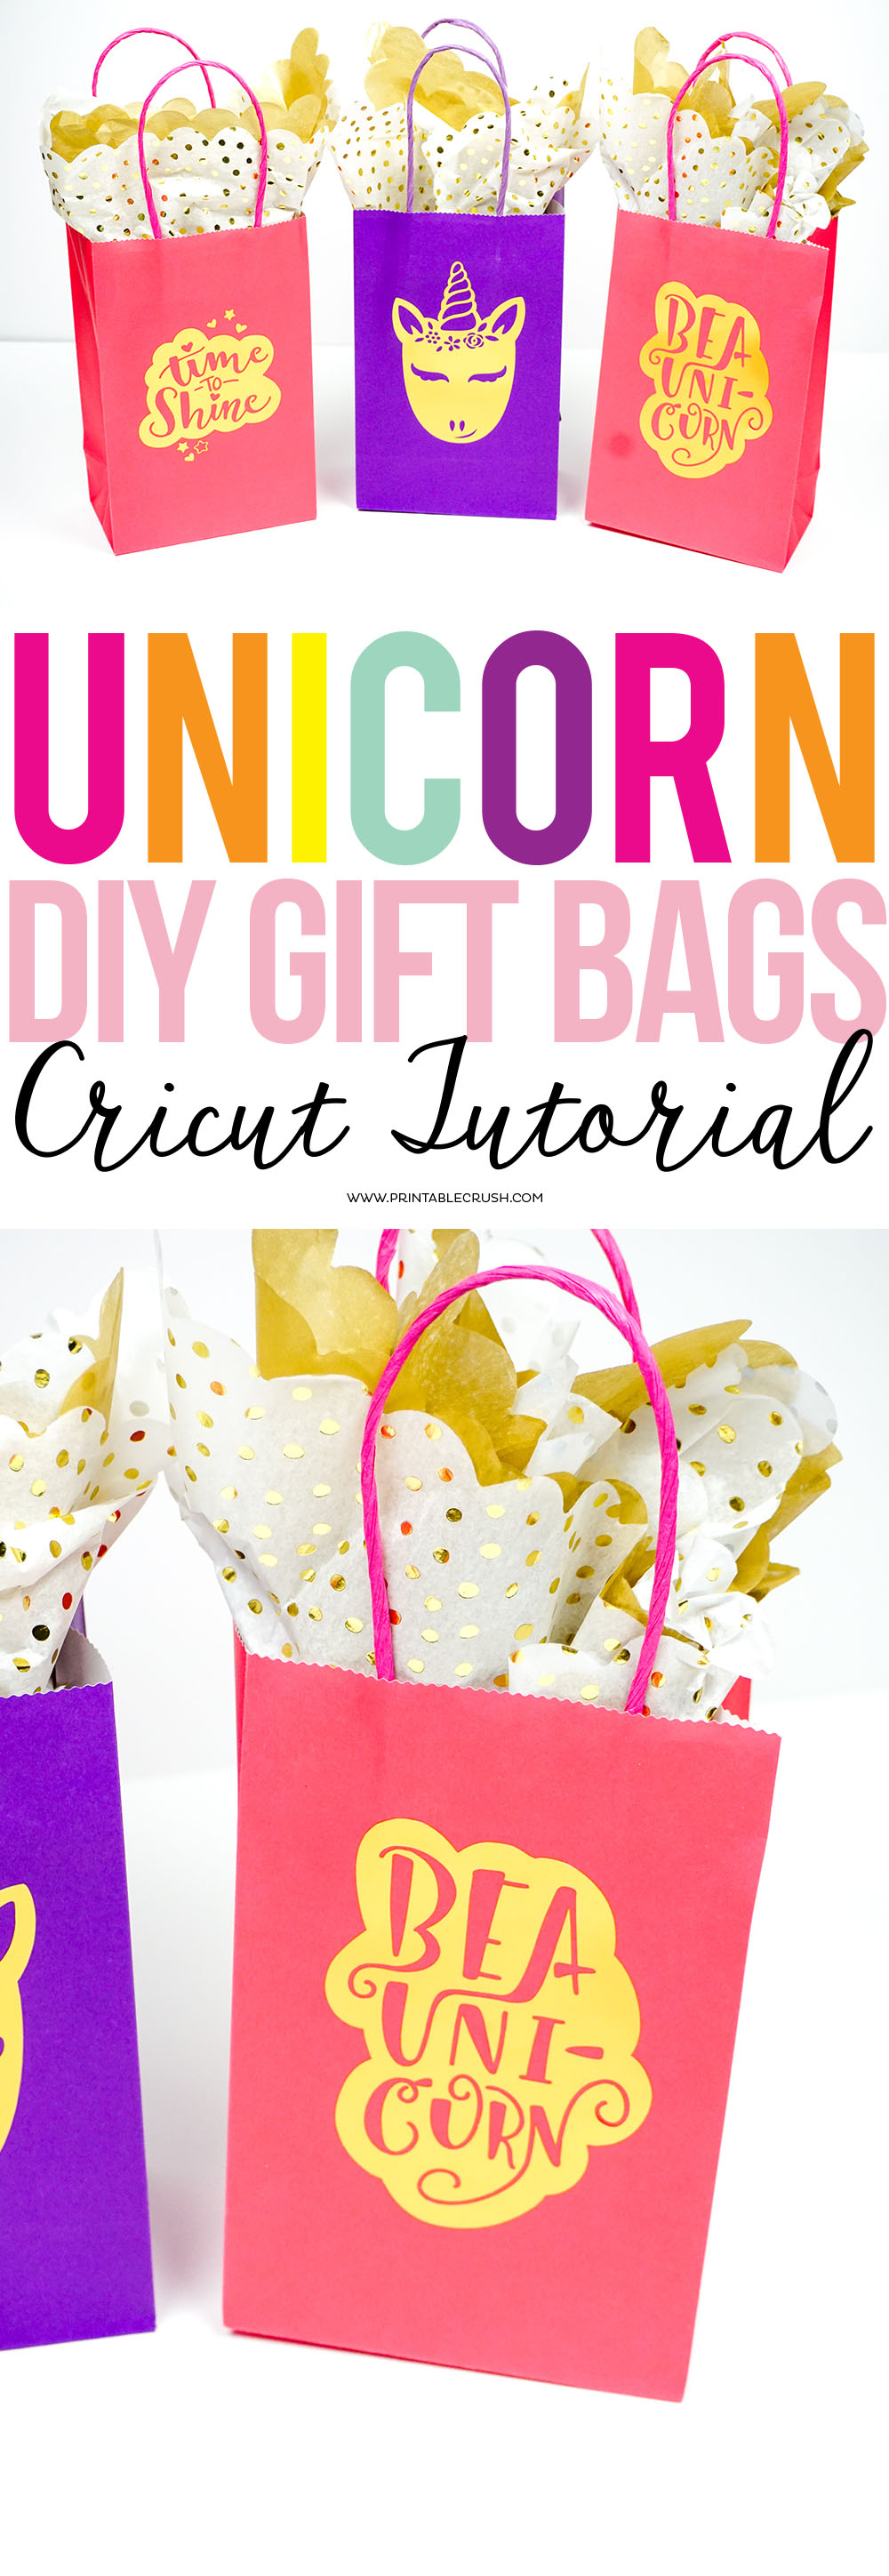 I love these adorable DIY Gift Bags with Unicorn Graphics. They're the easiest way to customize a birthday party favor bag!#unicorncraft #unicorn #unicornsvgfile #unicornparty #partyideas #partyfavors #unicornpartyfavors #cricutcraft #cricutideas #cricutpartyfavors via @printablecrush